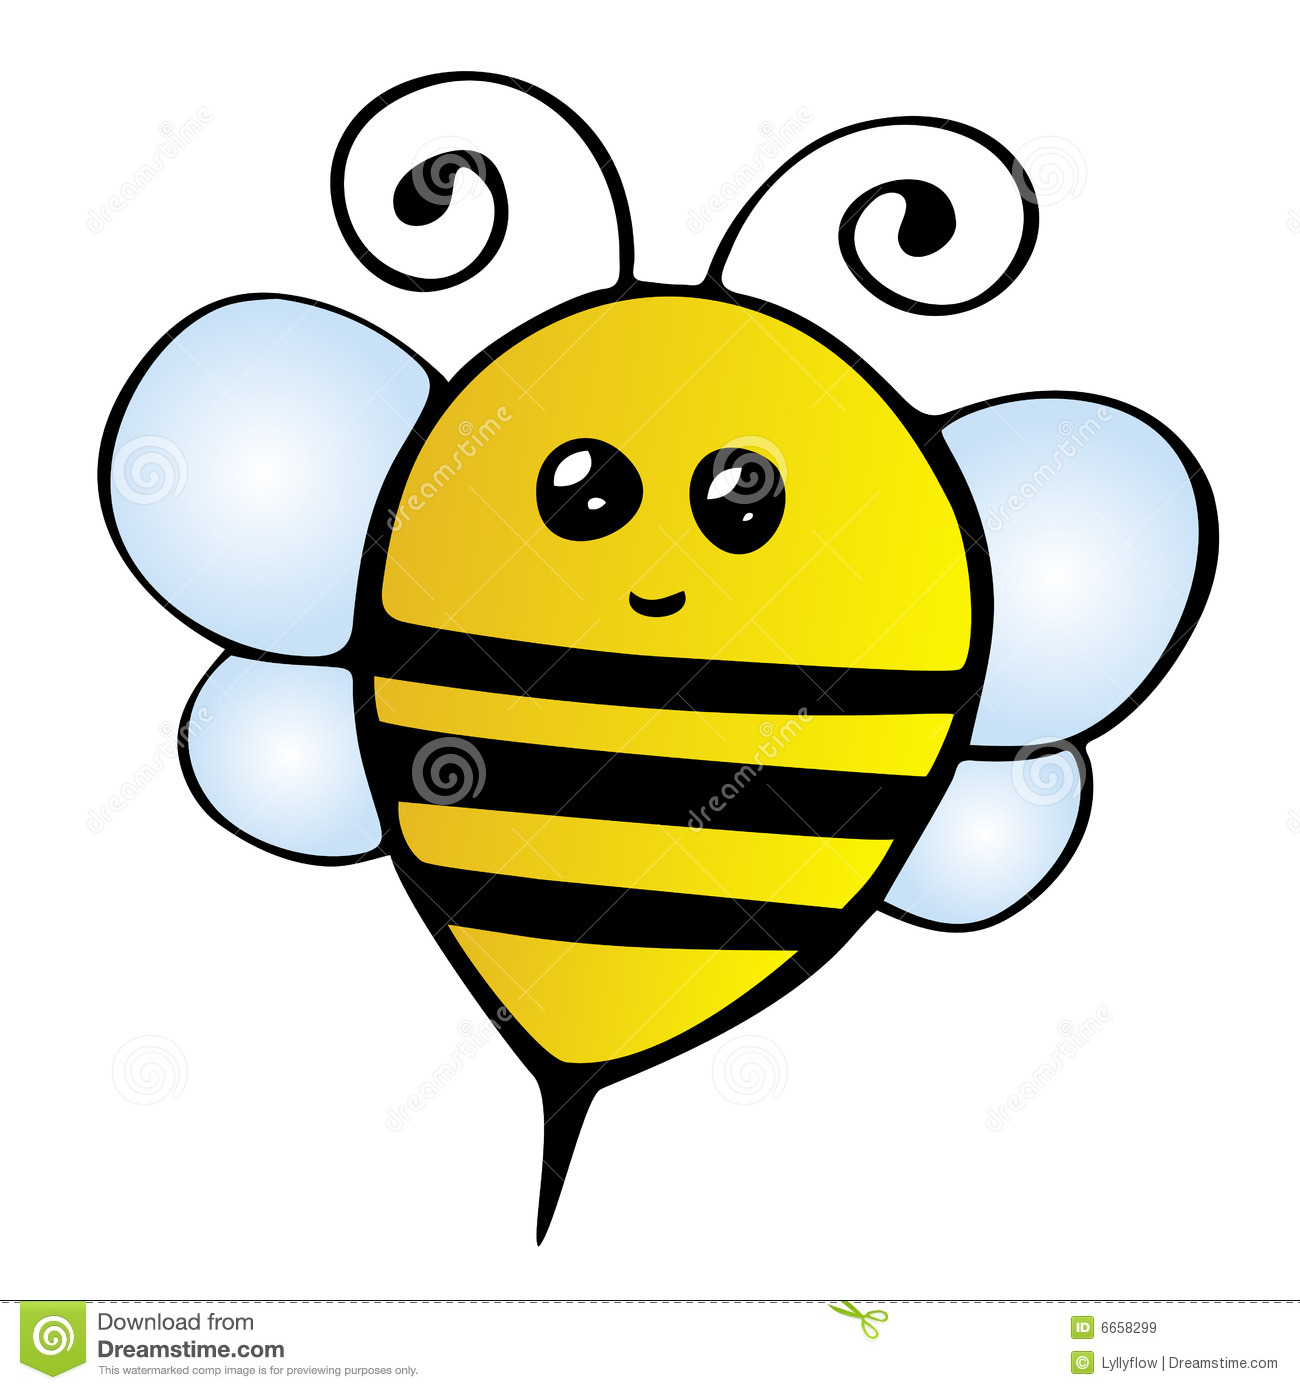 clipart cute bee-#4